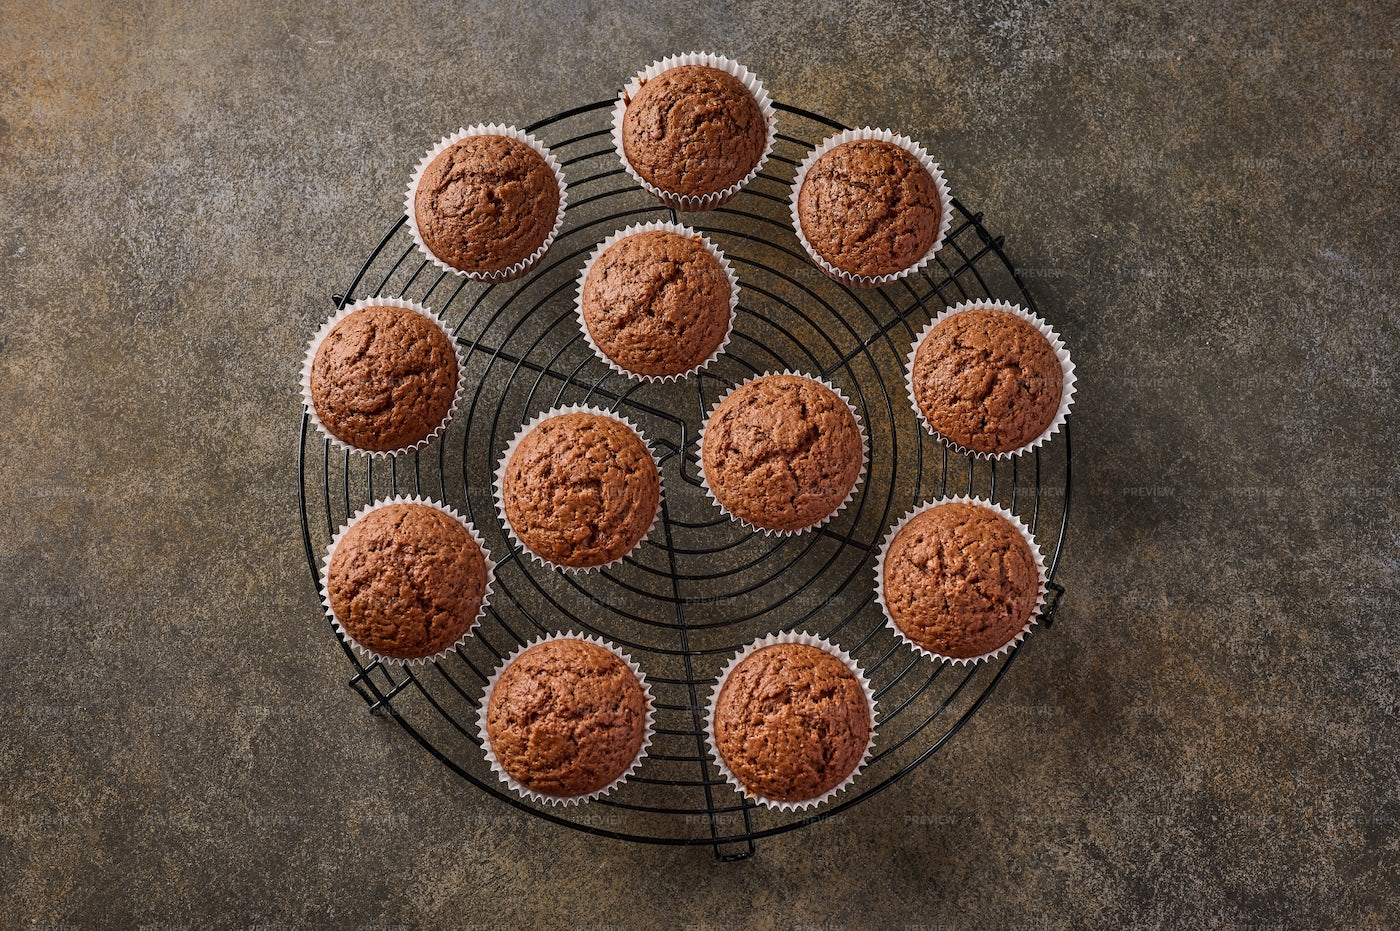 Chocolate Cupcakes On Grille: Stock Photos